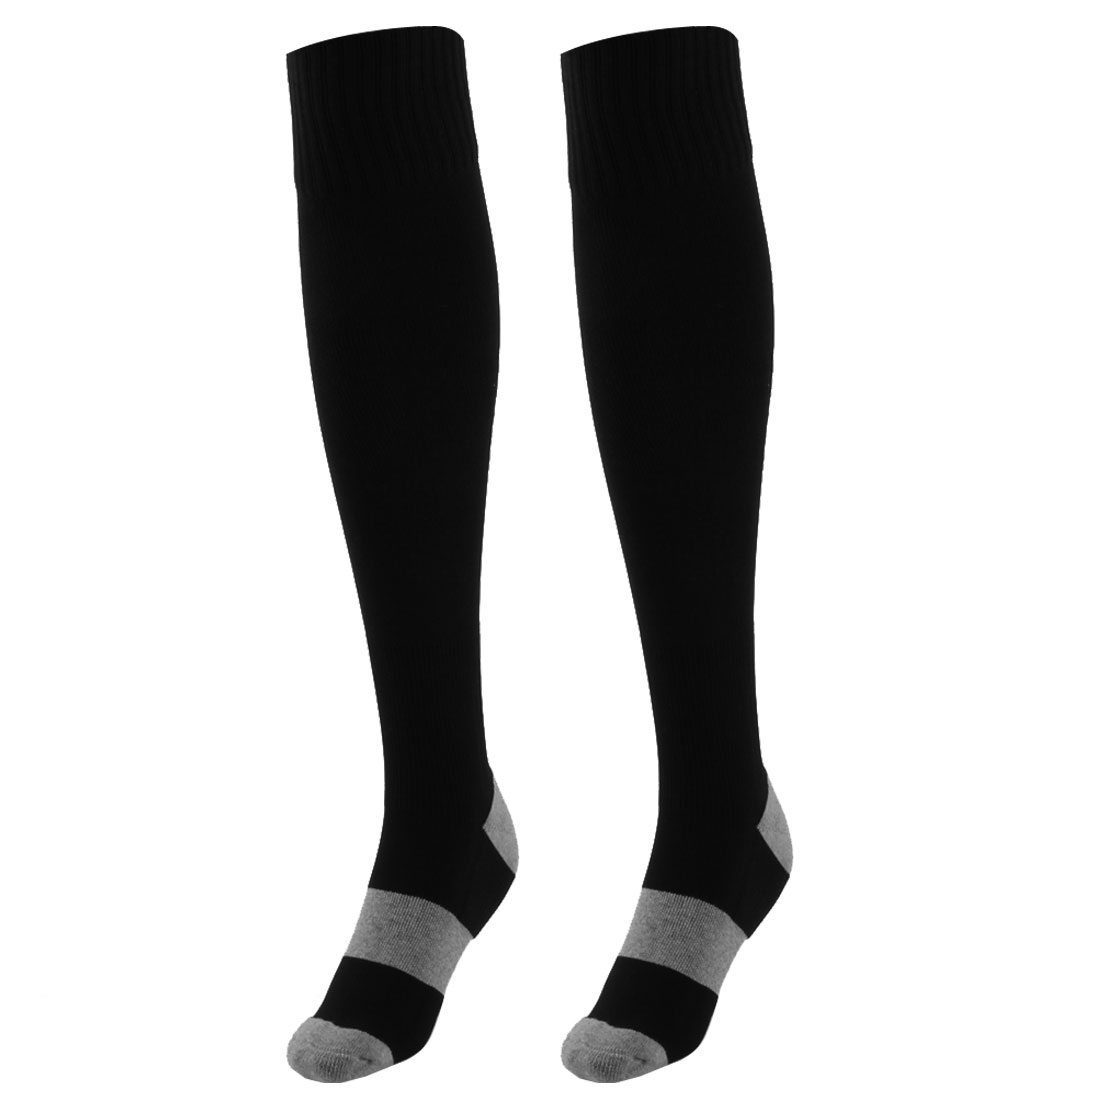 Unisex Outdoor Sports Nylon Non Slip Stretch Rugby Soccer Football Long Socks Black Pair